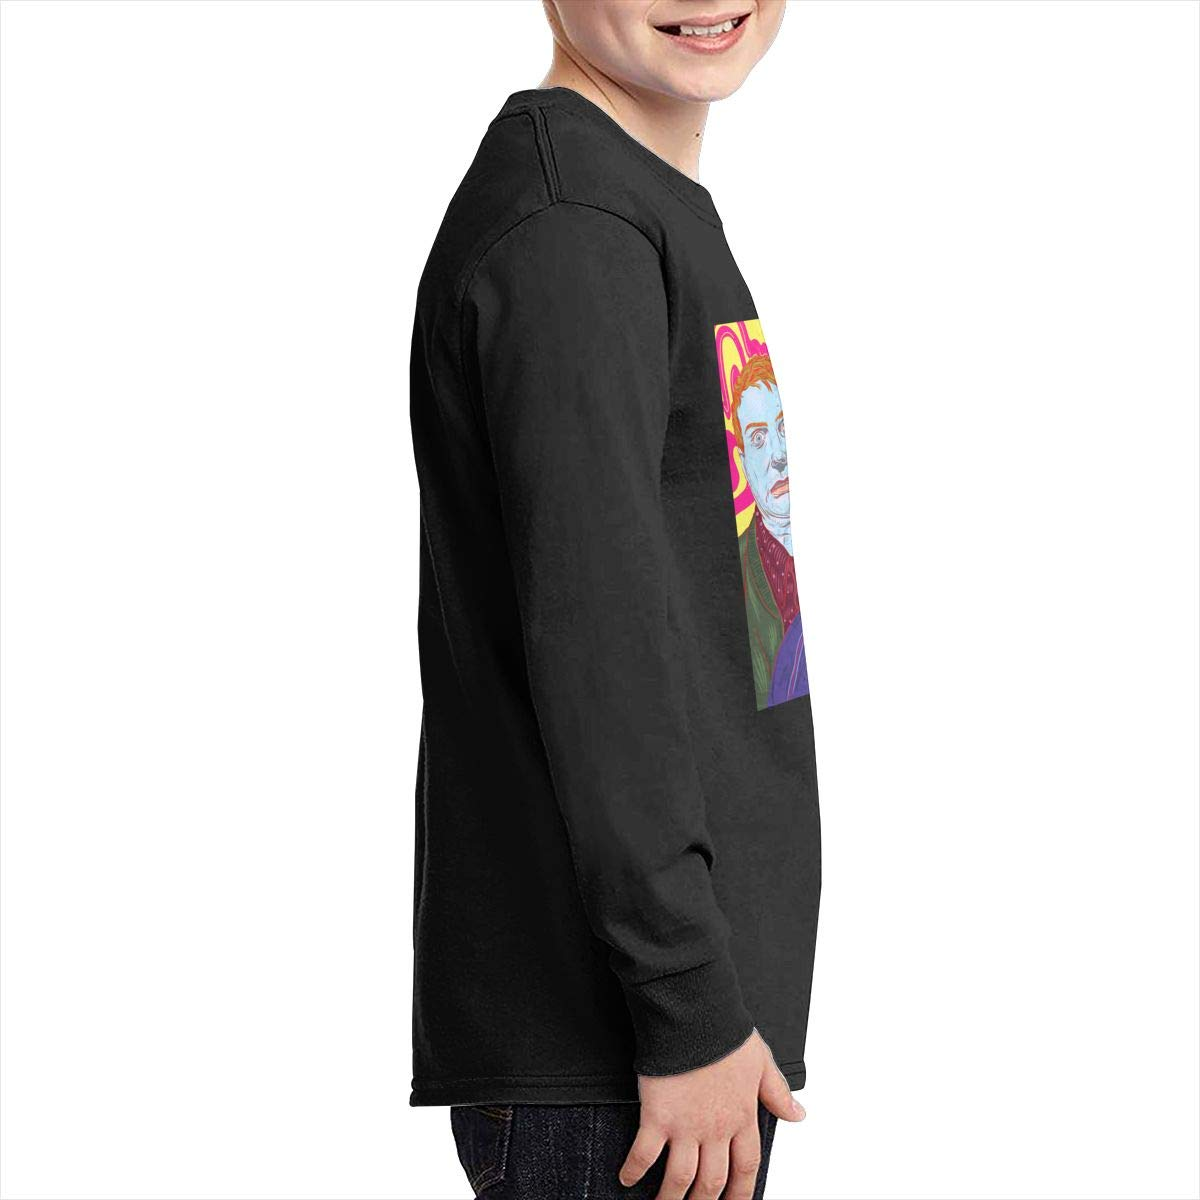 RhteGui Mac Demarco Boys /& Girls Junior Vintage Long Sleeve T-Shirt Black